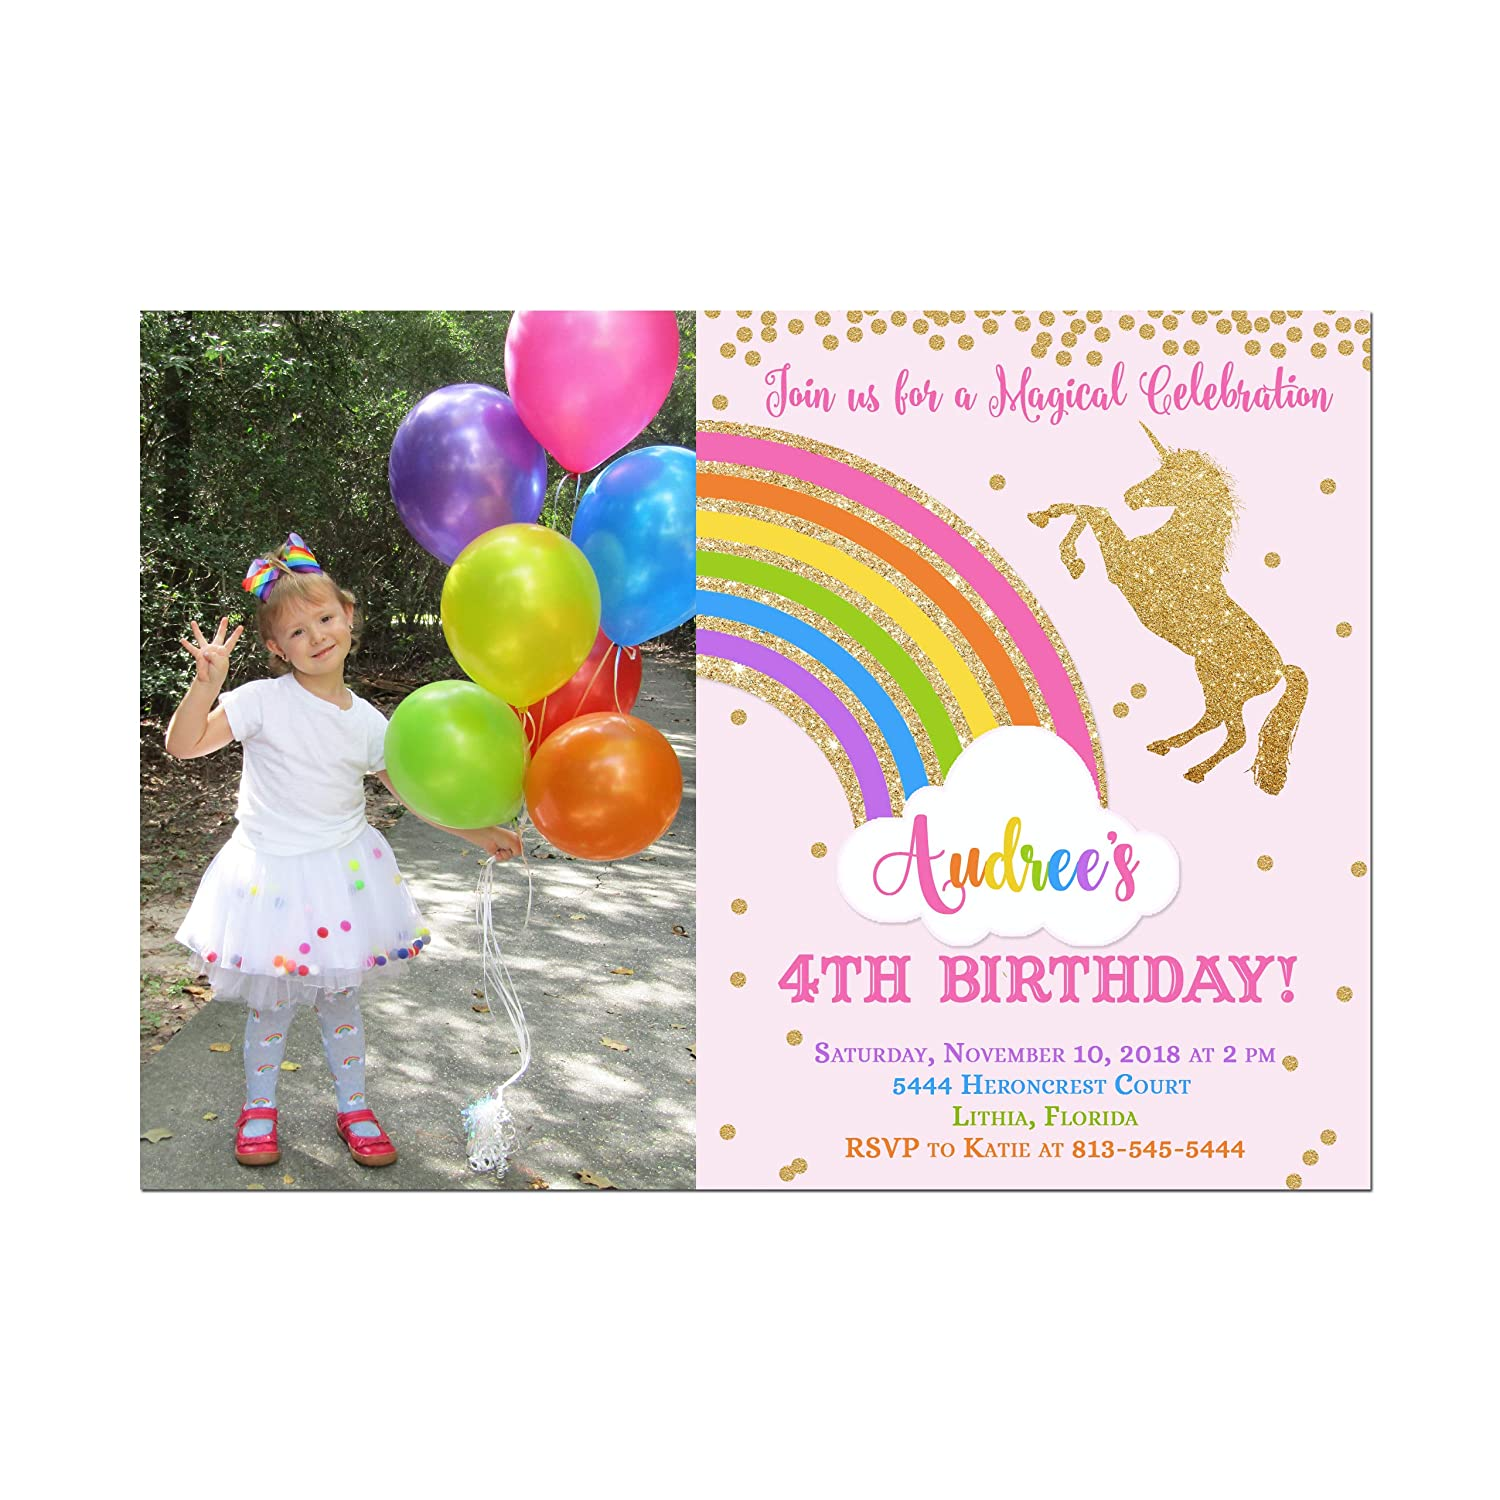 Amazon Bright Rainbow And Unicorn Photo Birthday Party Invitation Base Price Is For A Set Of 10 5x7 Inch Card Stock Invitations With White Envelopes